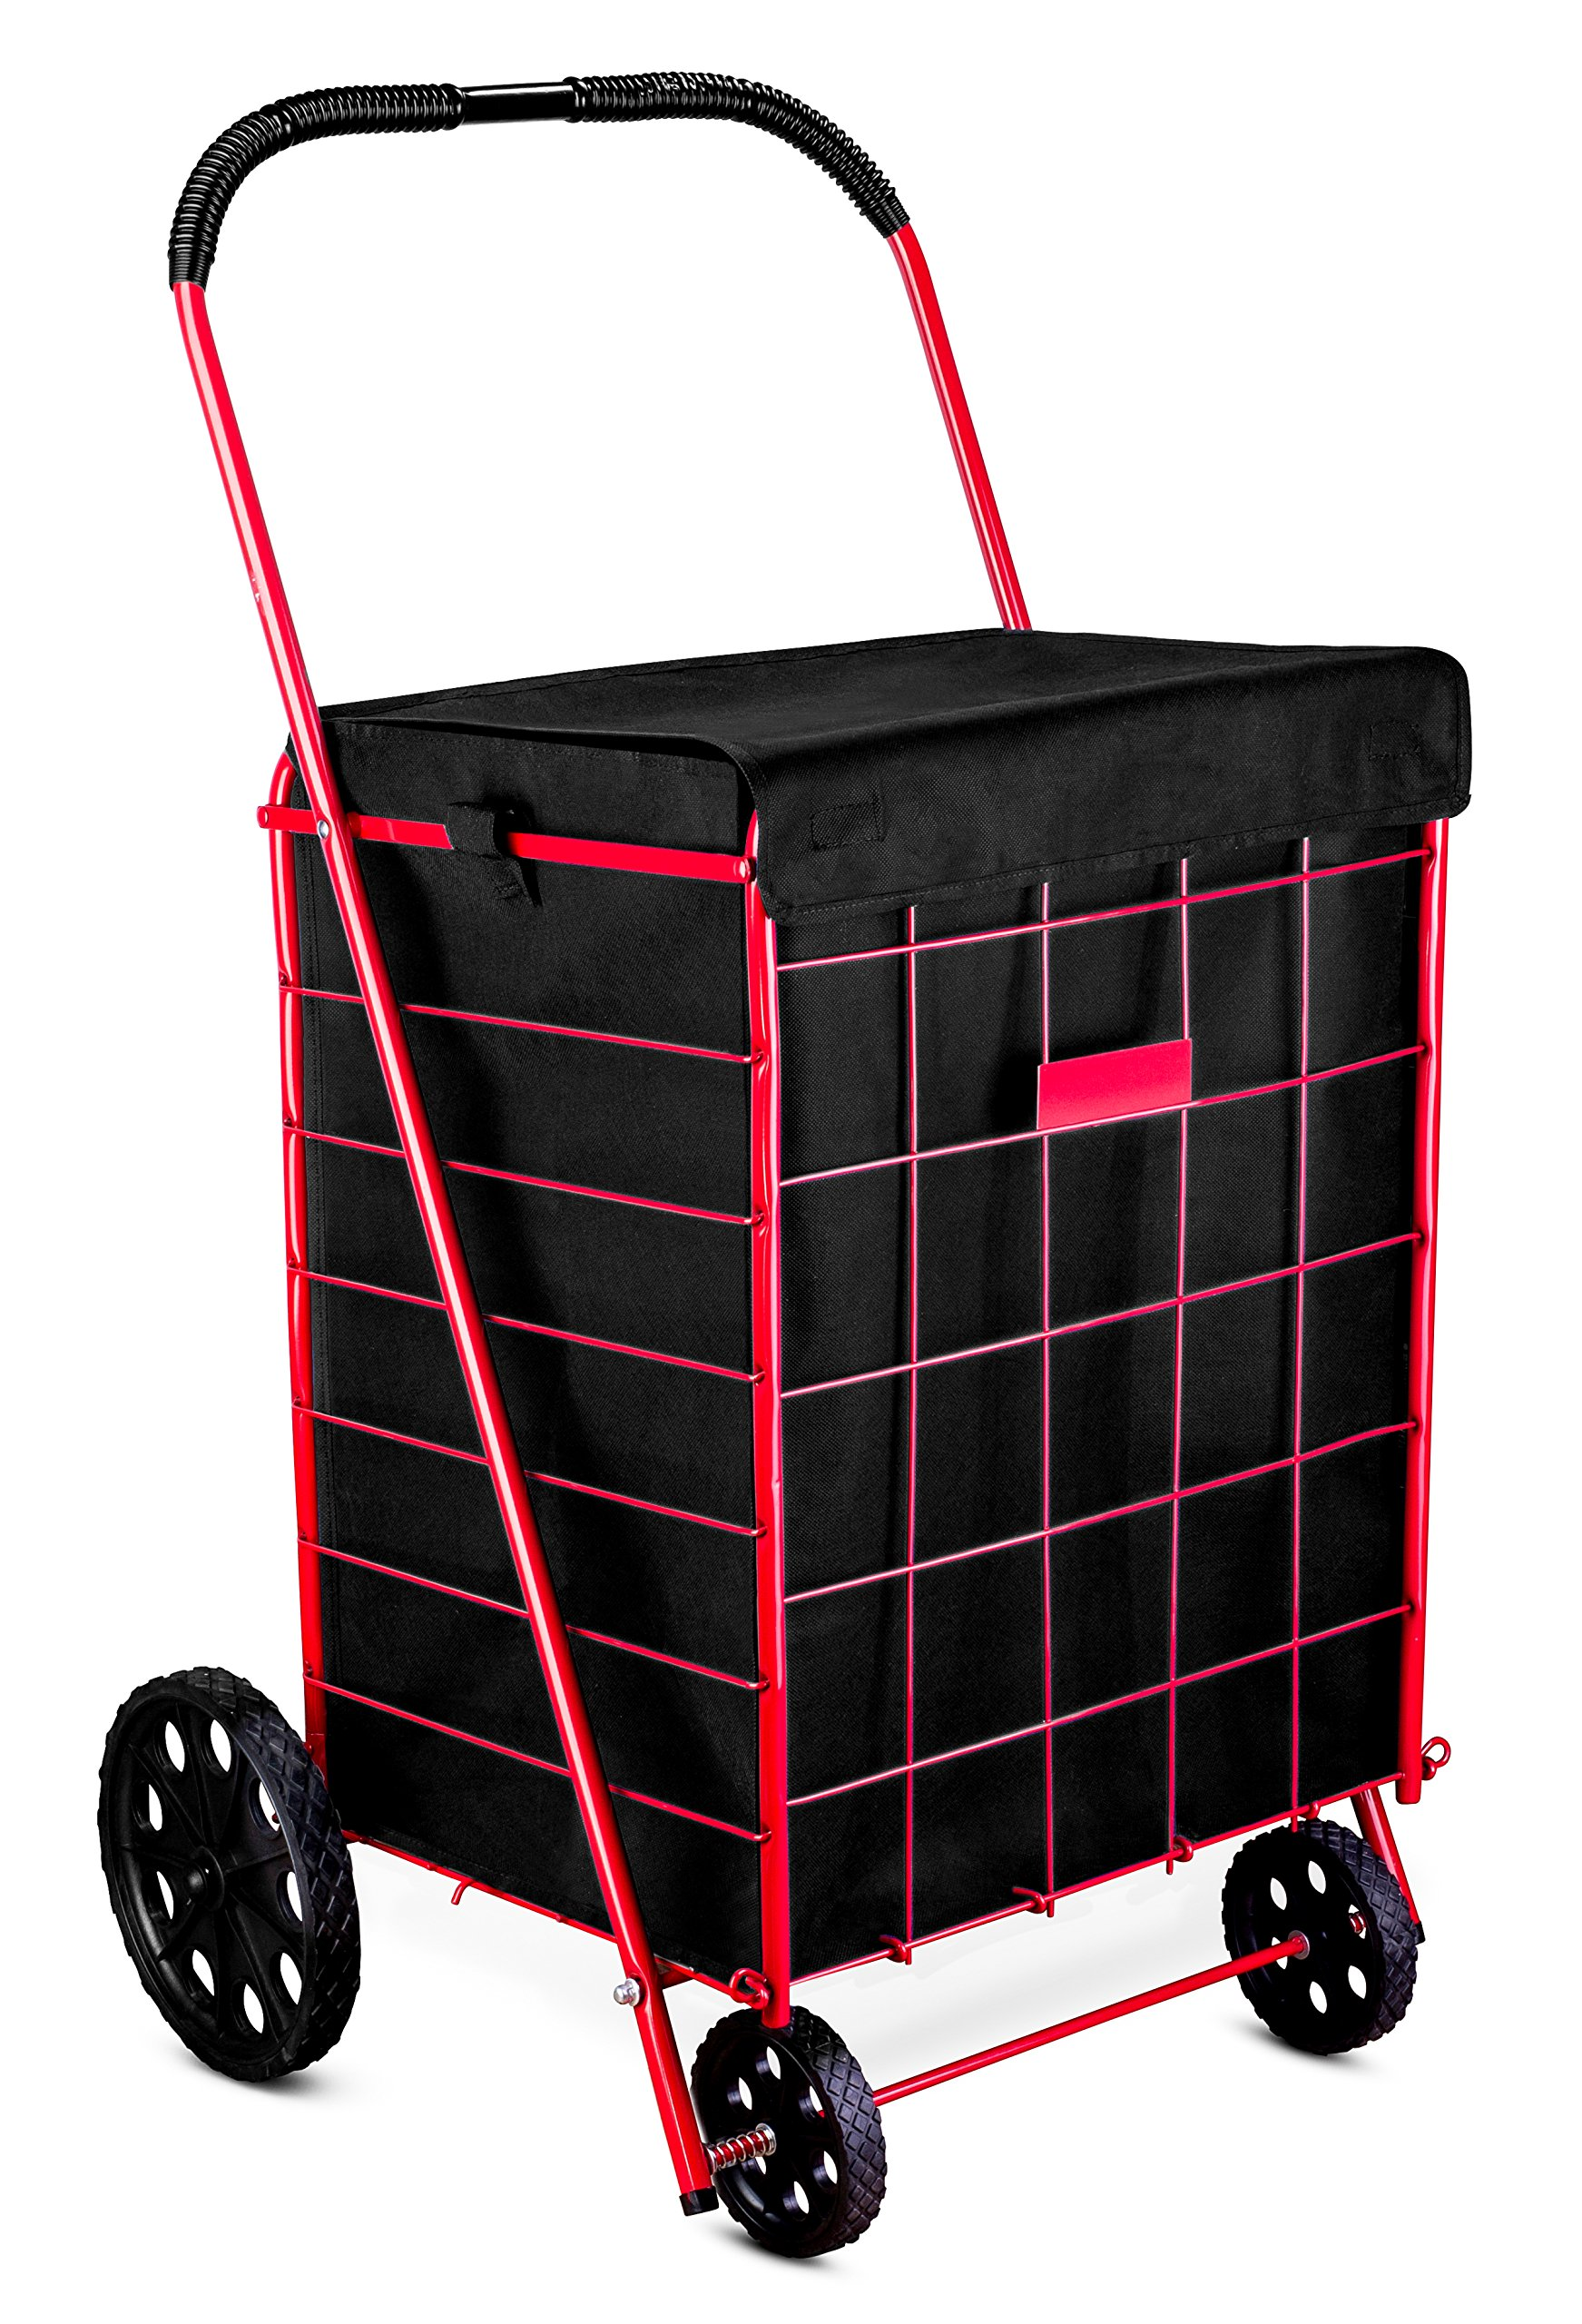 Shopping Cart Liner – 18″ X 15″ X 24″ – Square Bottom Fits Snugly Into a Standard Shopping Cart. Cover and Adjustable Straps for Easy and Secure Attachment. Made from Waterproof Material, Black